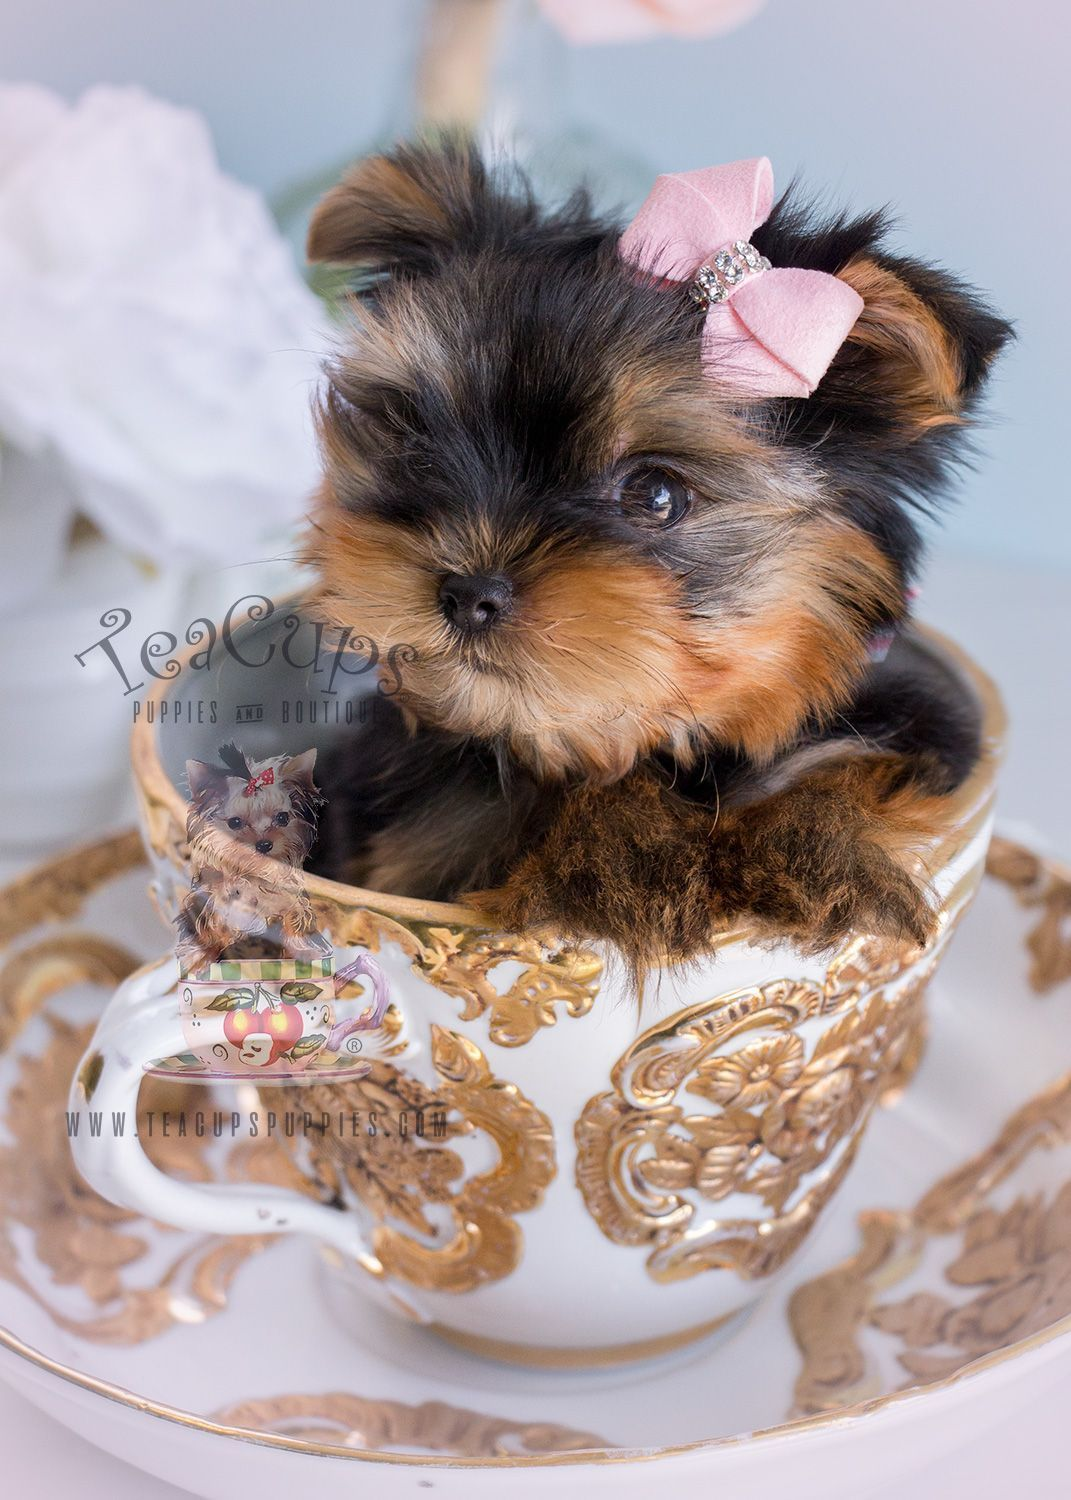 Baby Doll Yorkie Puppy For Sale by